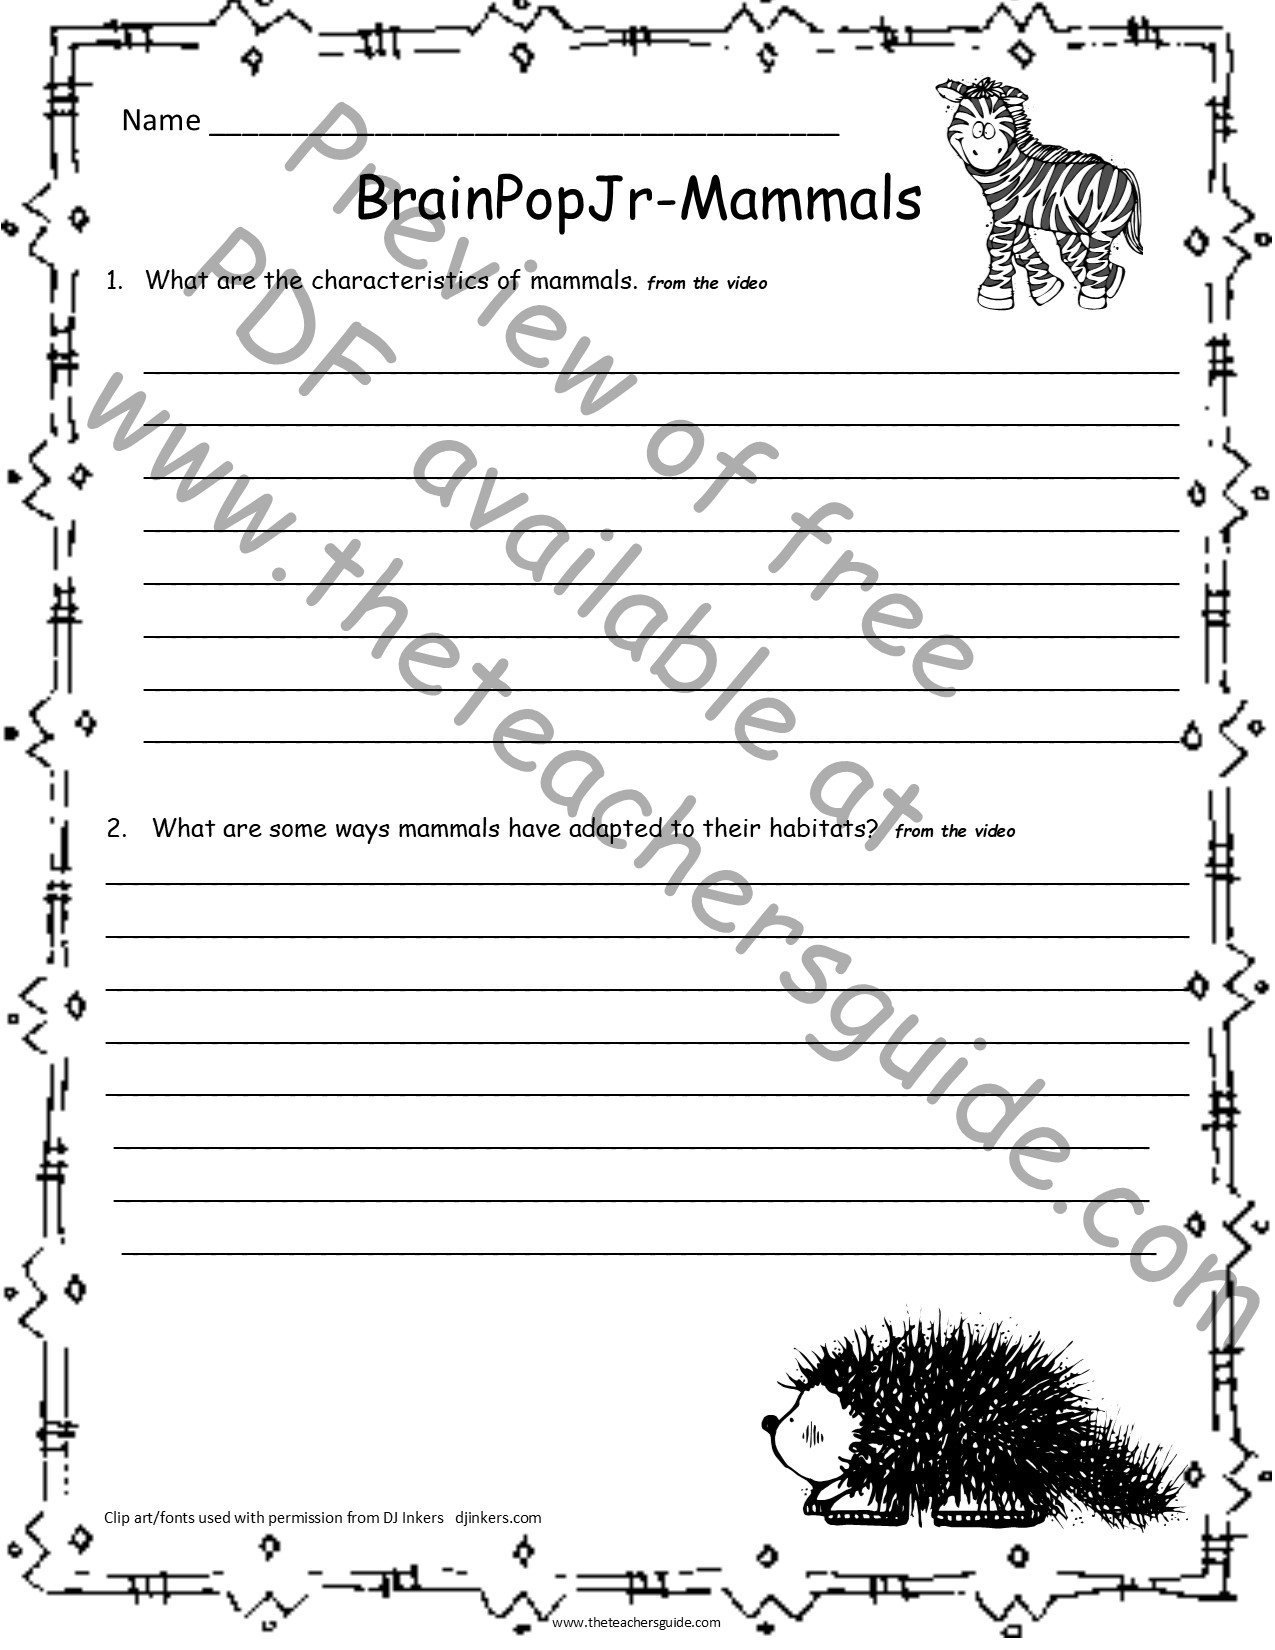 Mammals Worksheet First Grade the Teacher Guide Free Lesson Plans Printouts and Resources